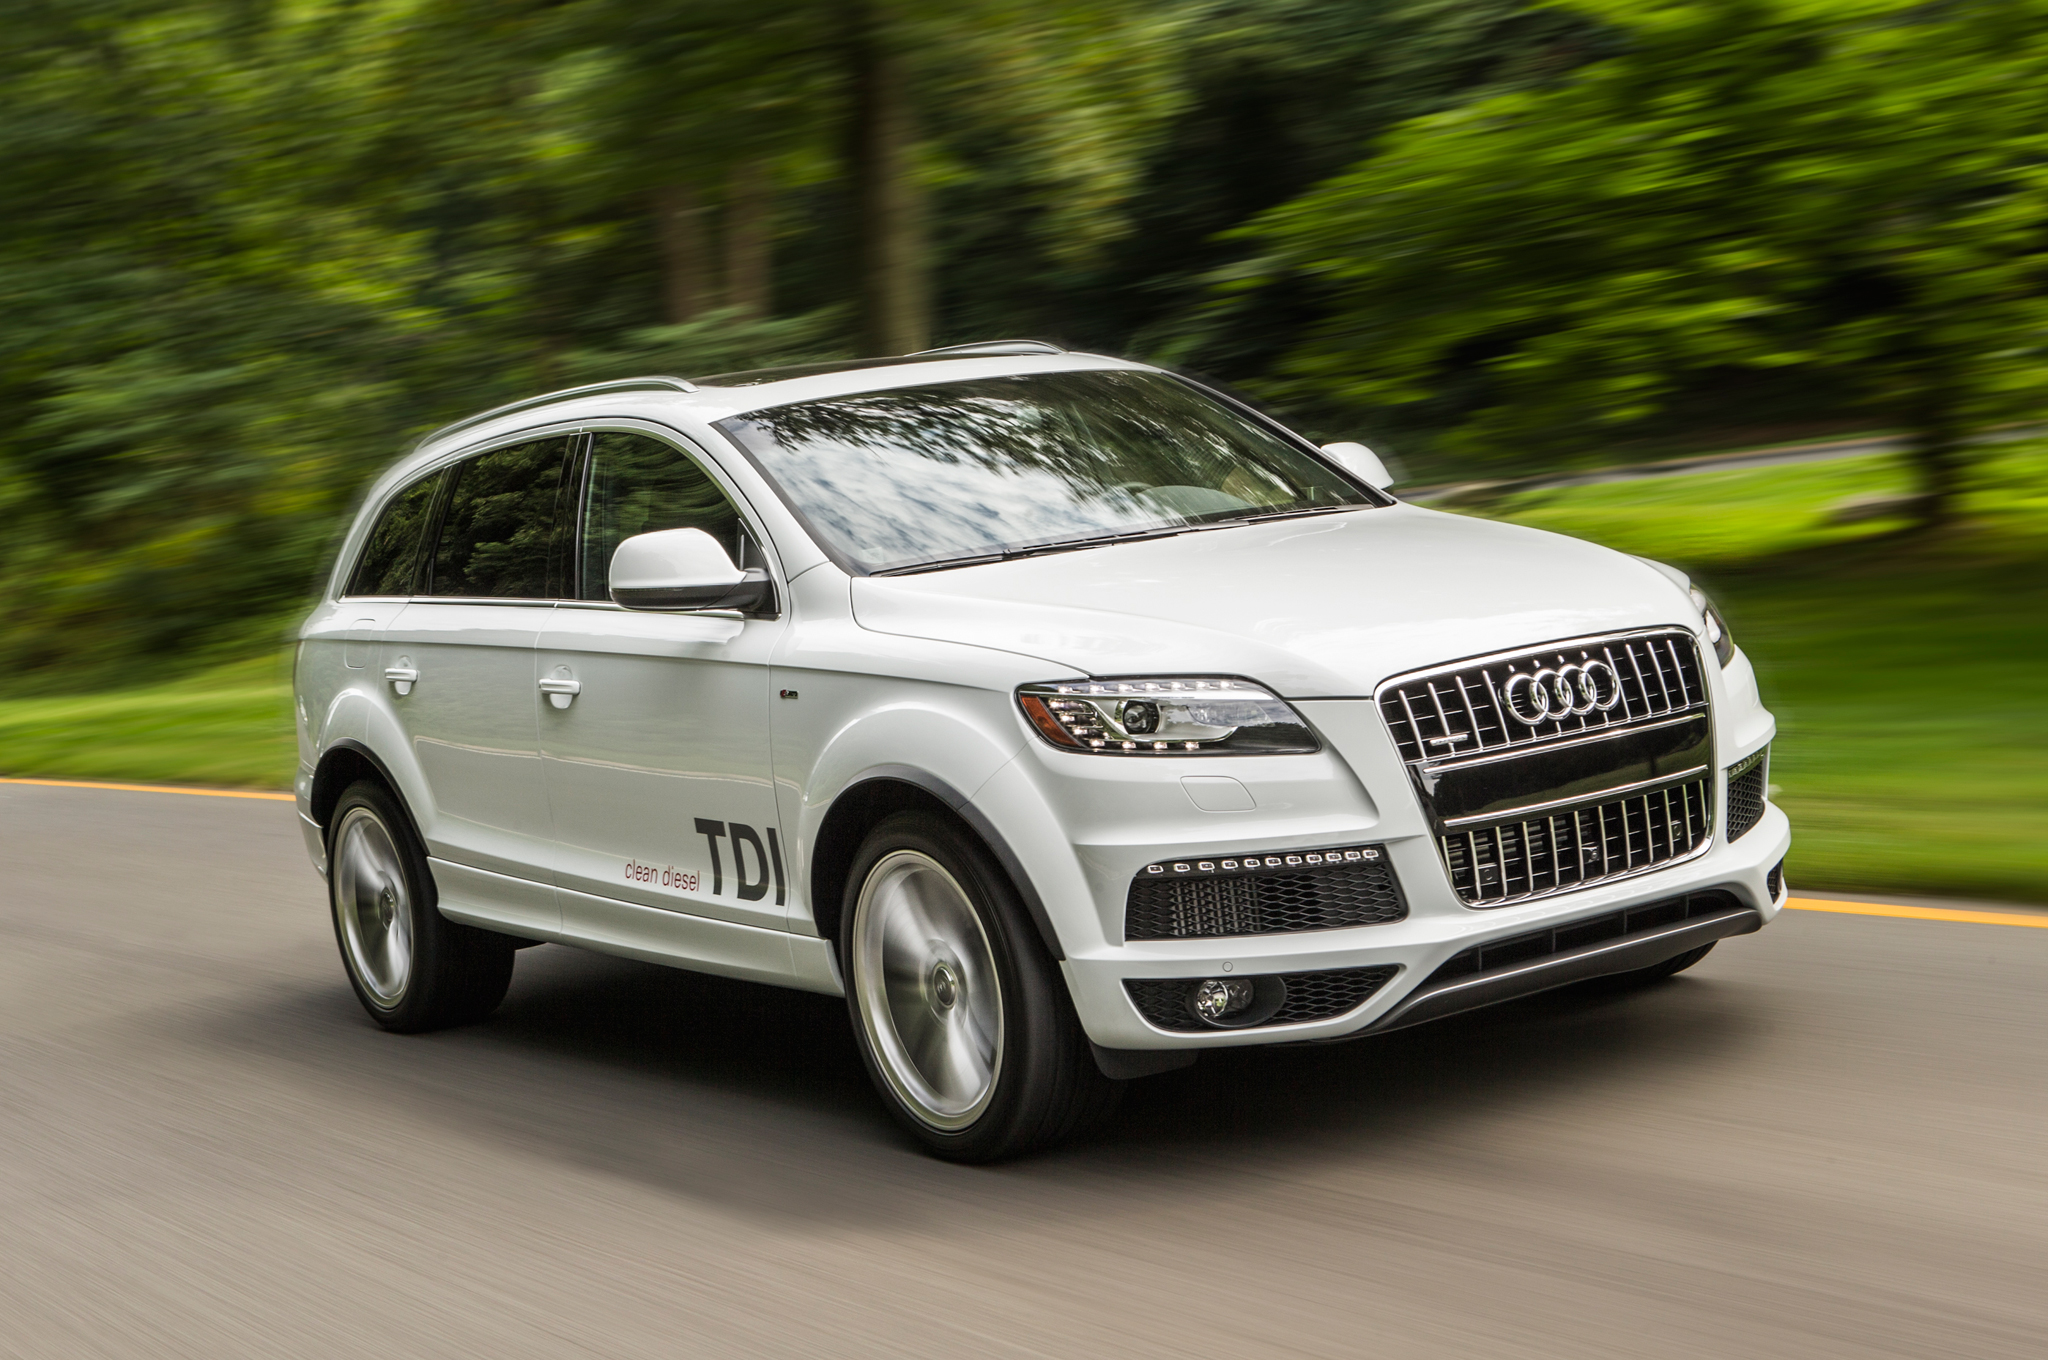 diesel tdi hd cars audi a images wallpaper front